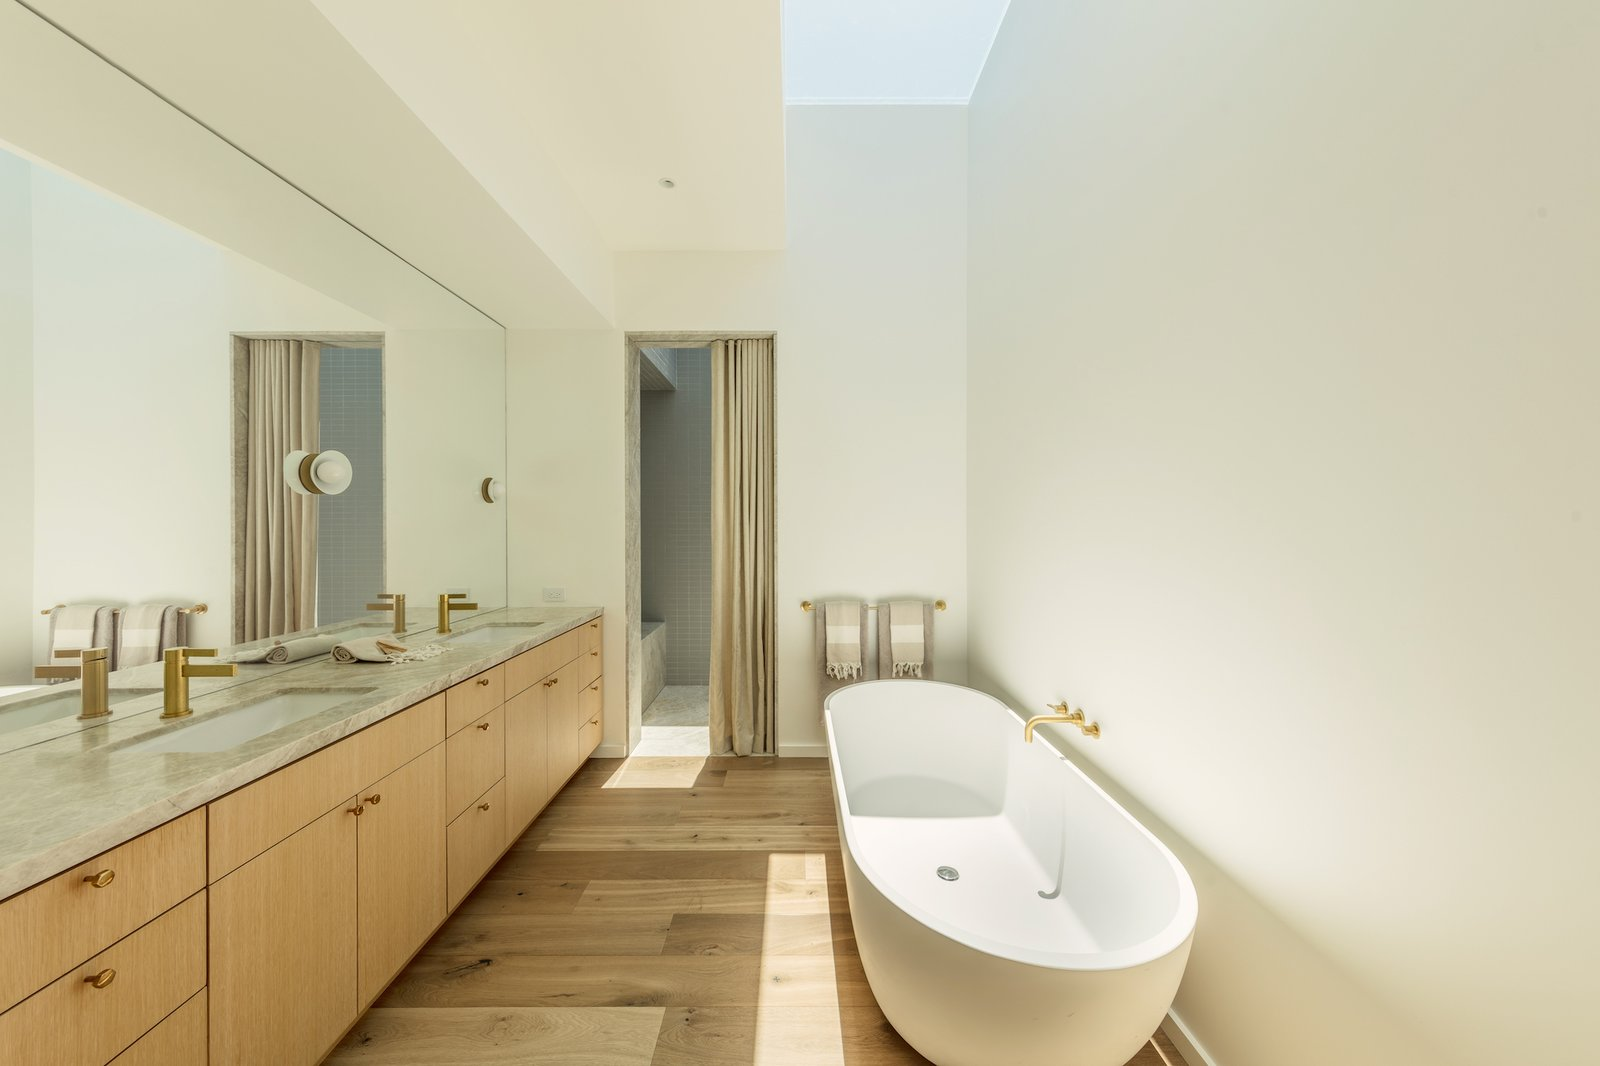 Master bathroom of Culver City Case Study House by Woods + Dangaran.